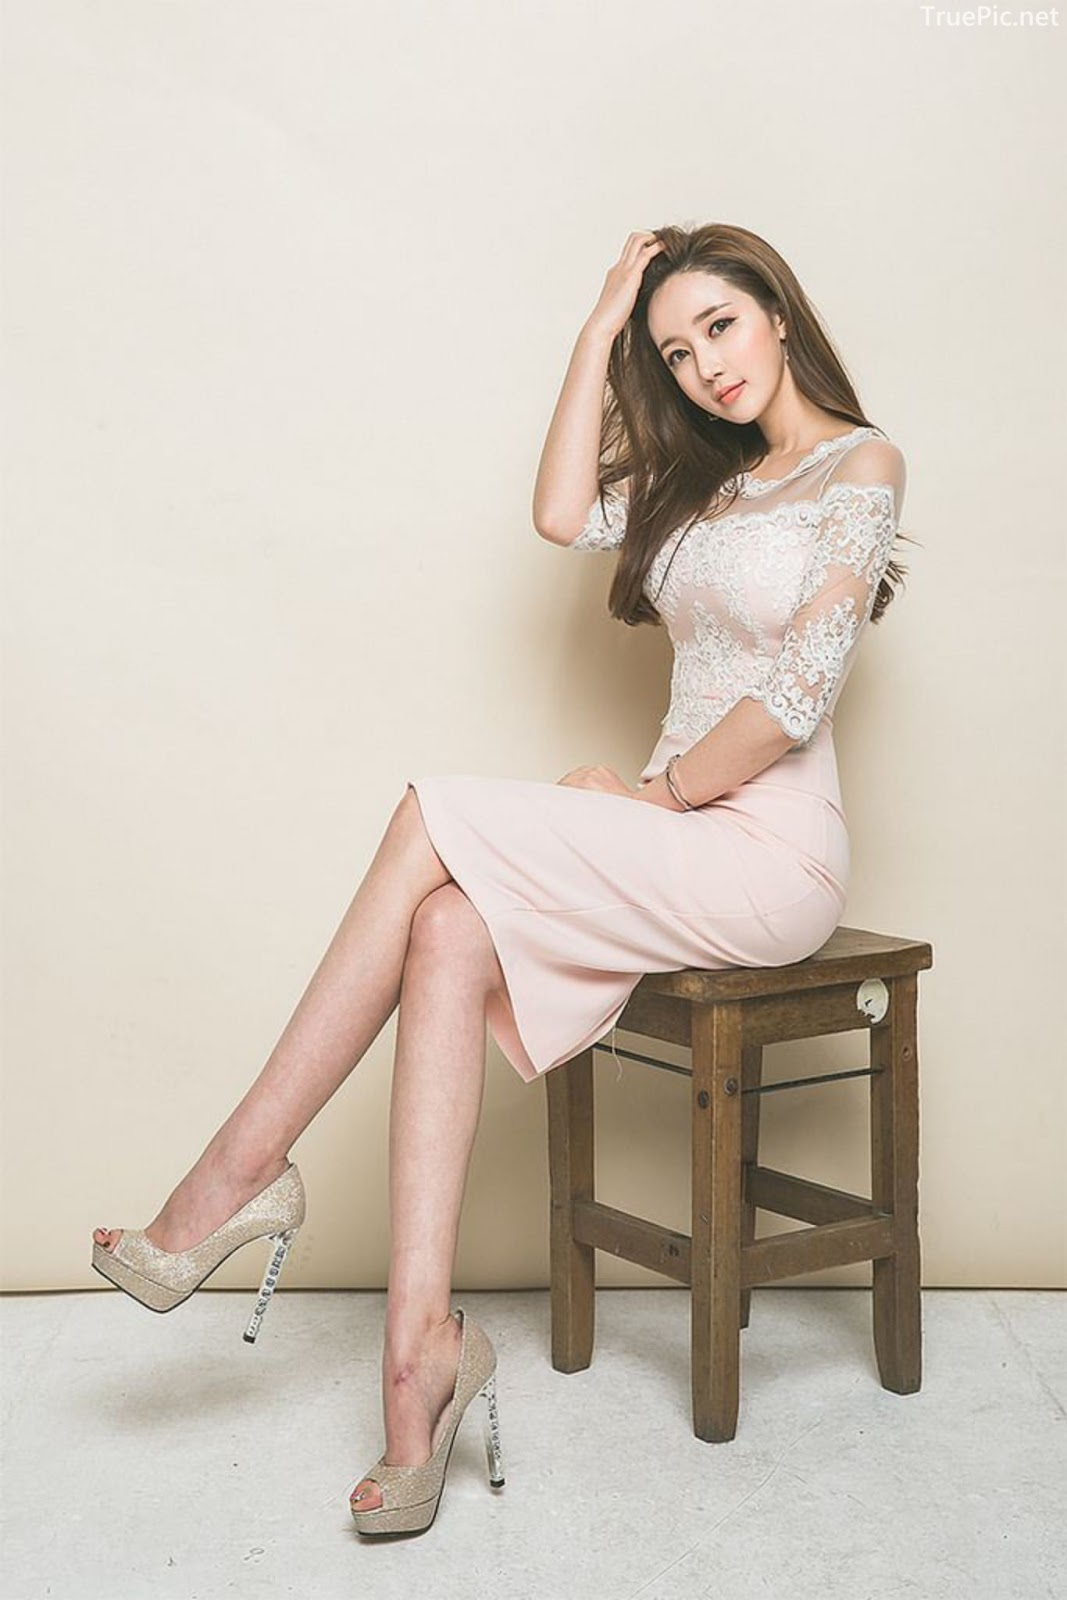 Lee Yeon Jeong - Indoor Photoshoot Collection - Korean fashion model - Part 3 - Picture 6